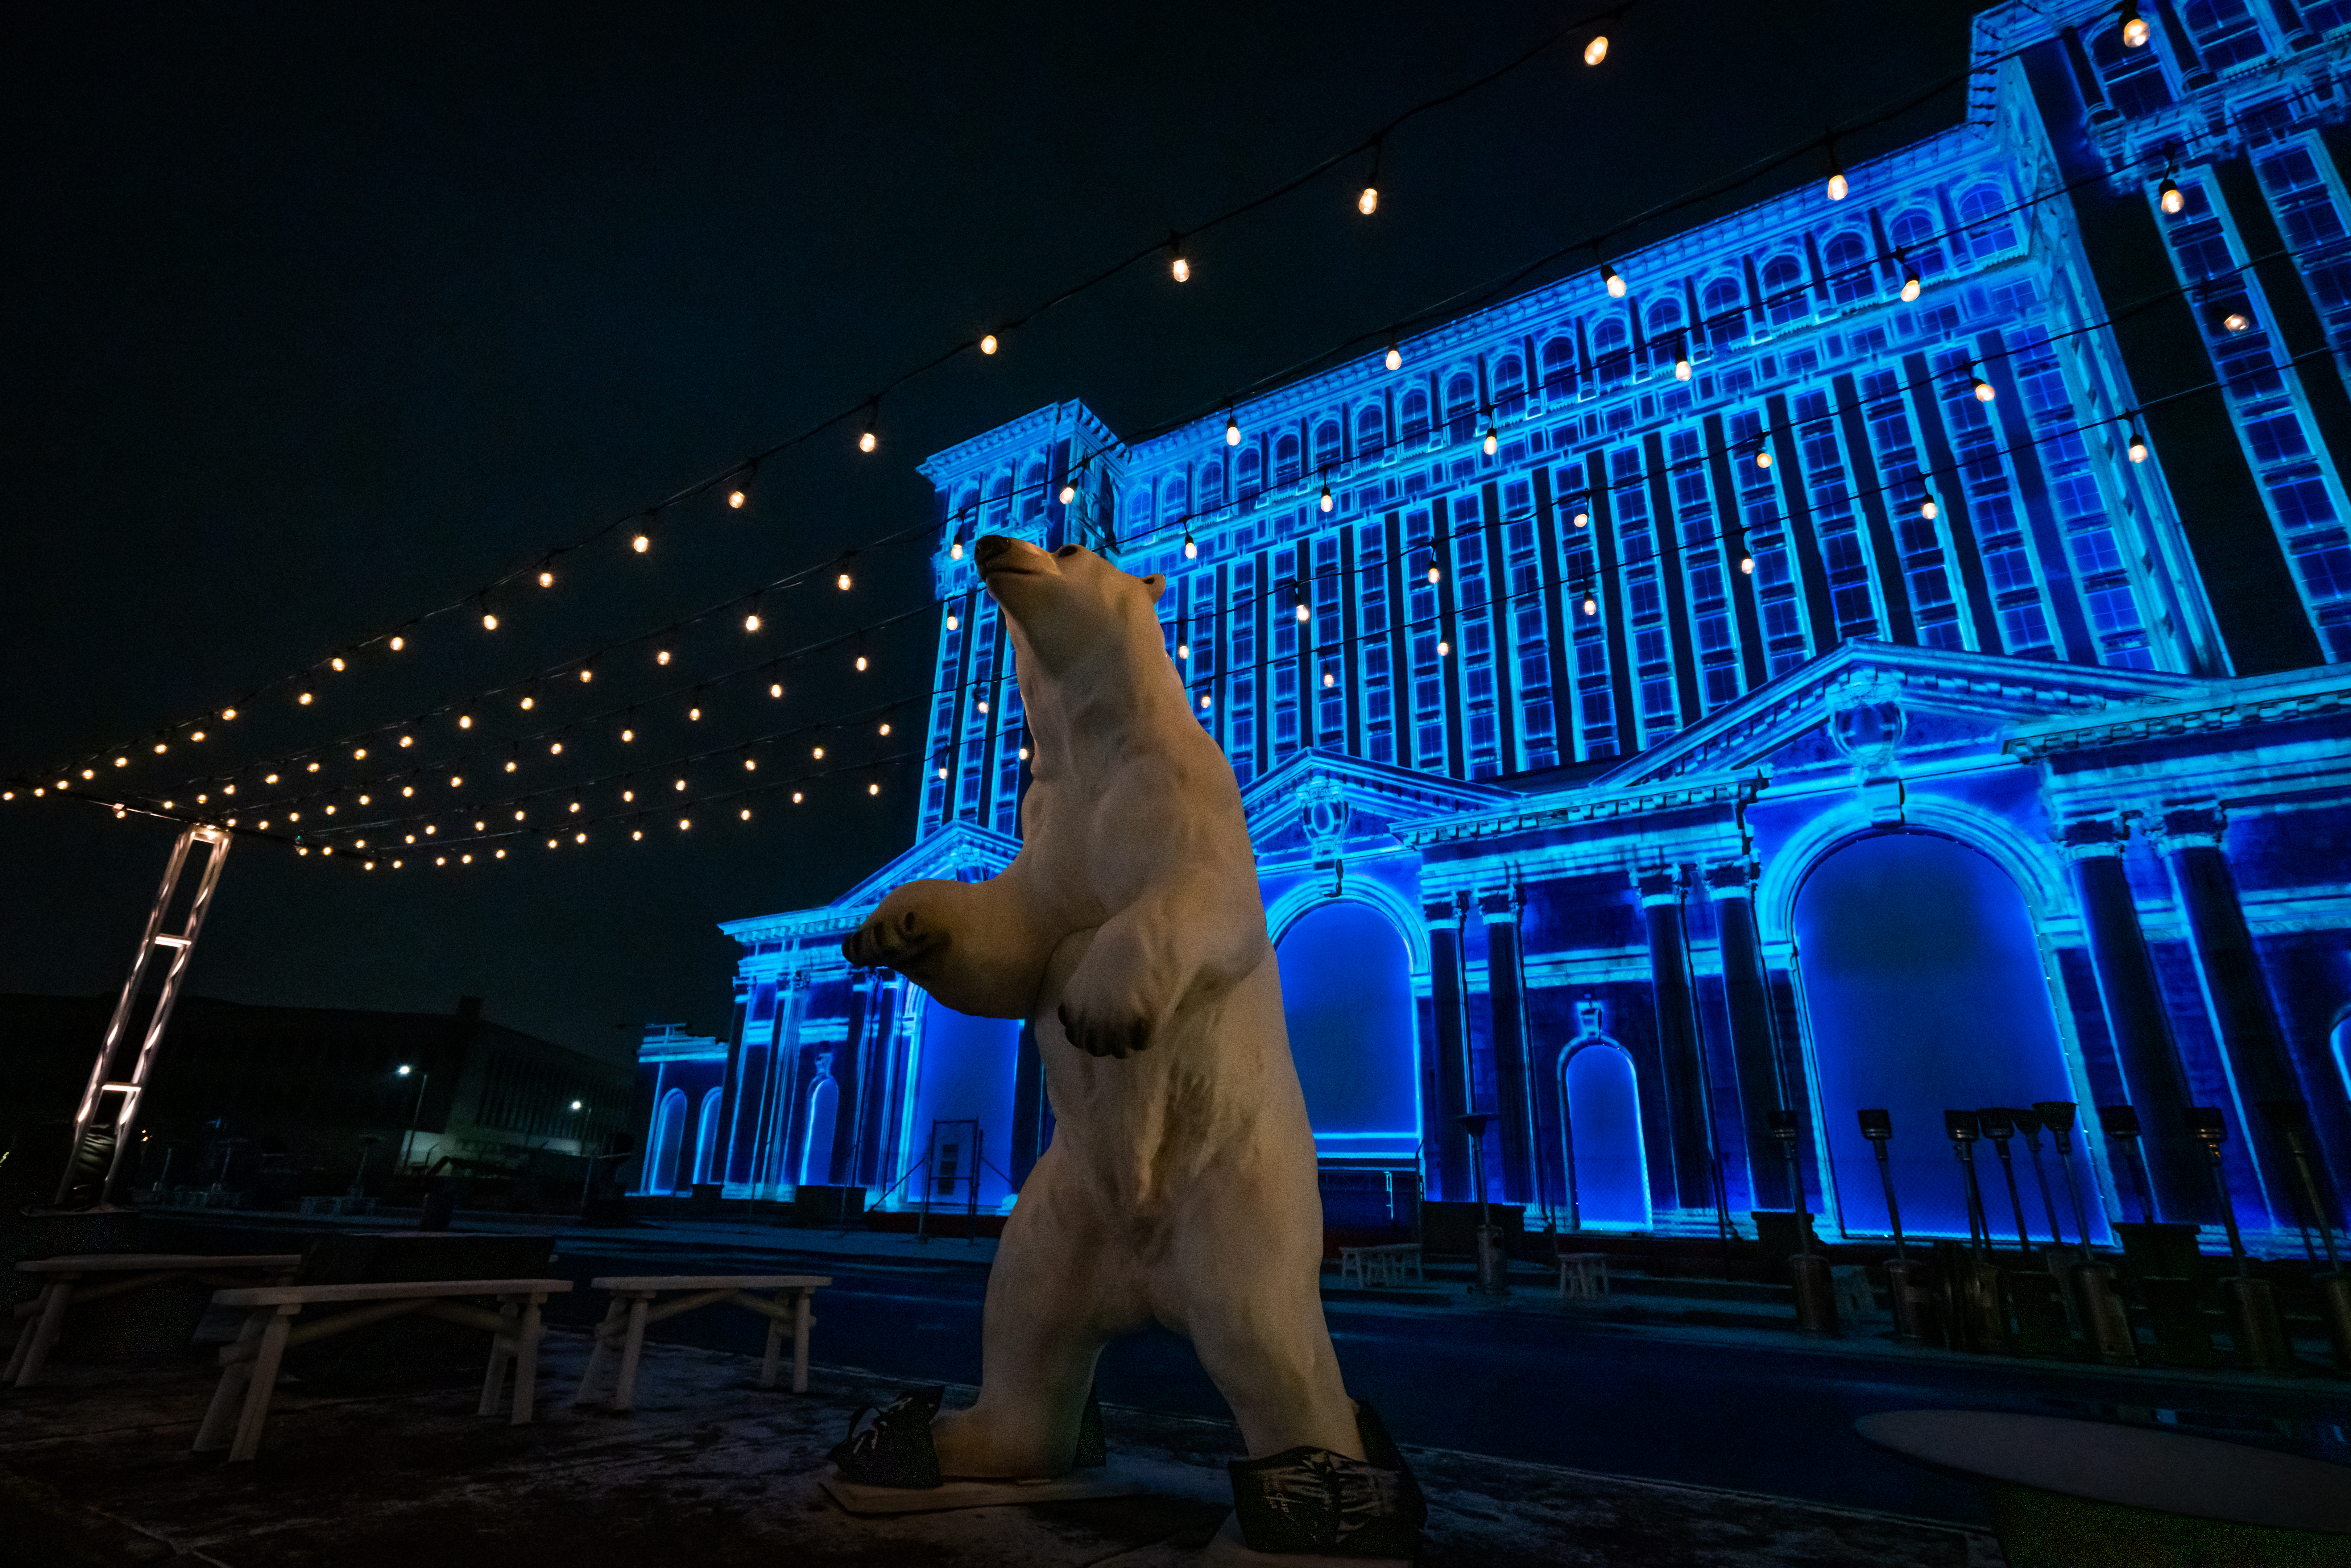 A Winter Festival lands outside of Michigan Central Station